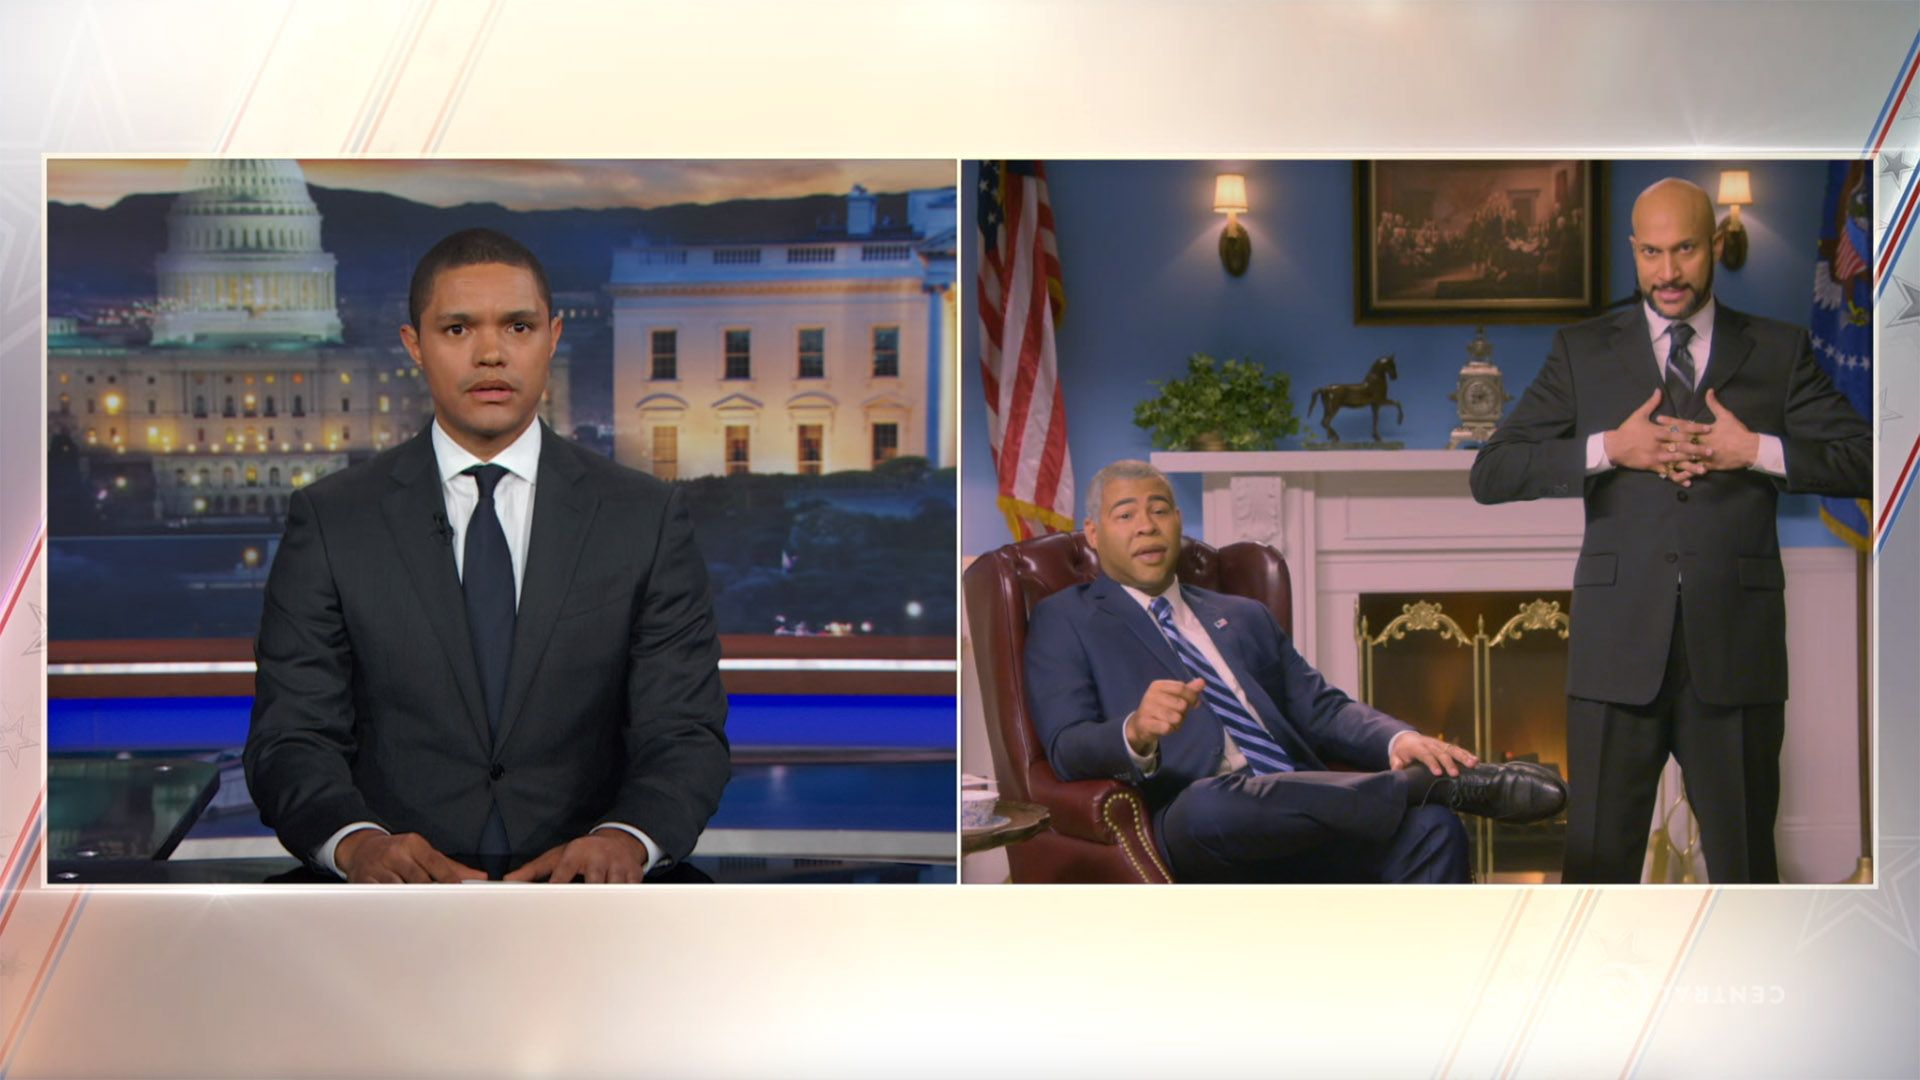 Keegan-Michael Key - A Farewell Address from President Obama's Anger Translator - The Daily Show with Trevor Noah (Video Clip)